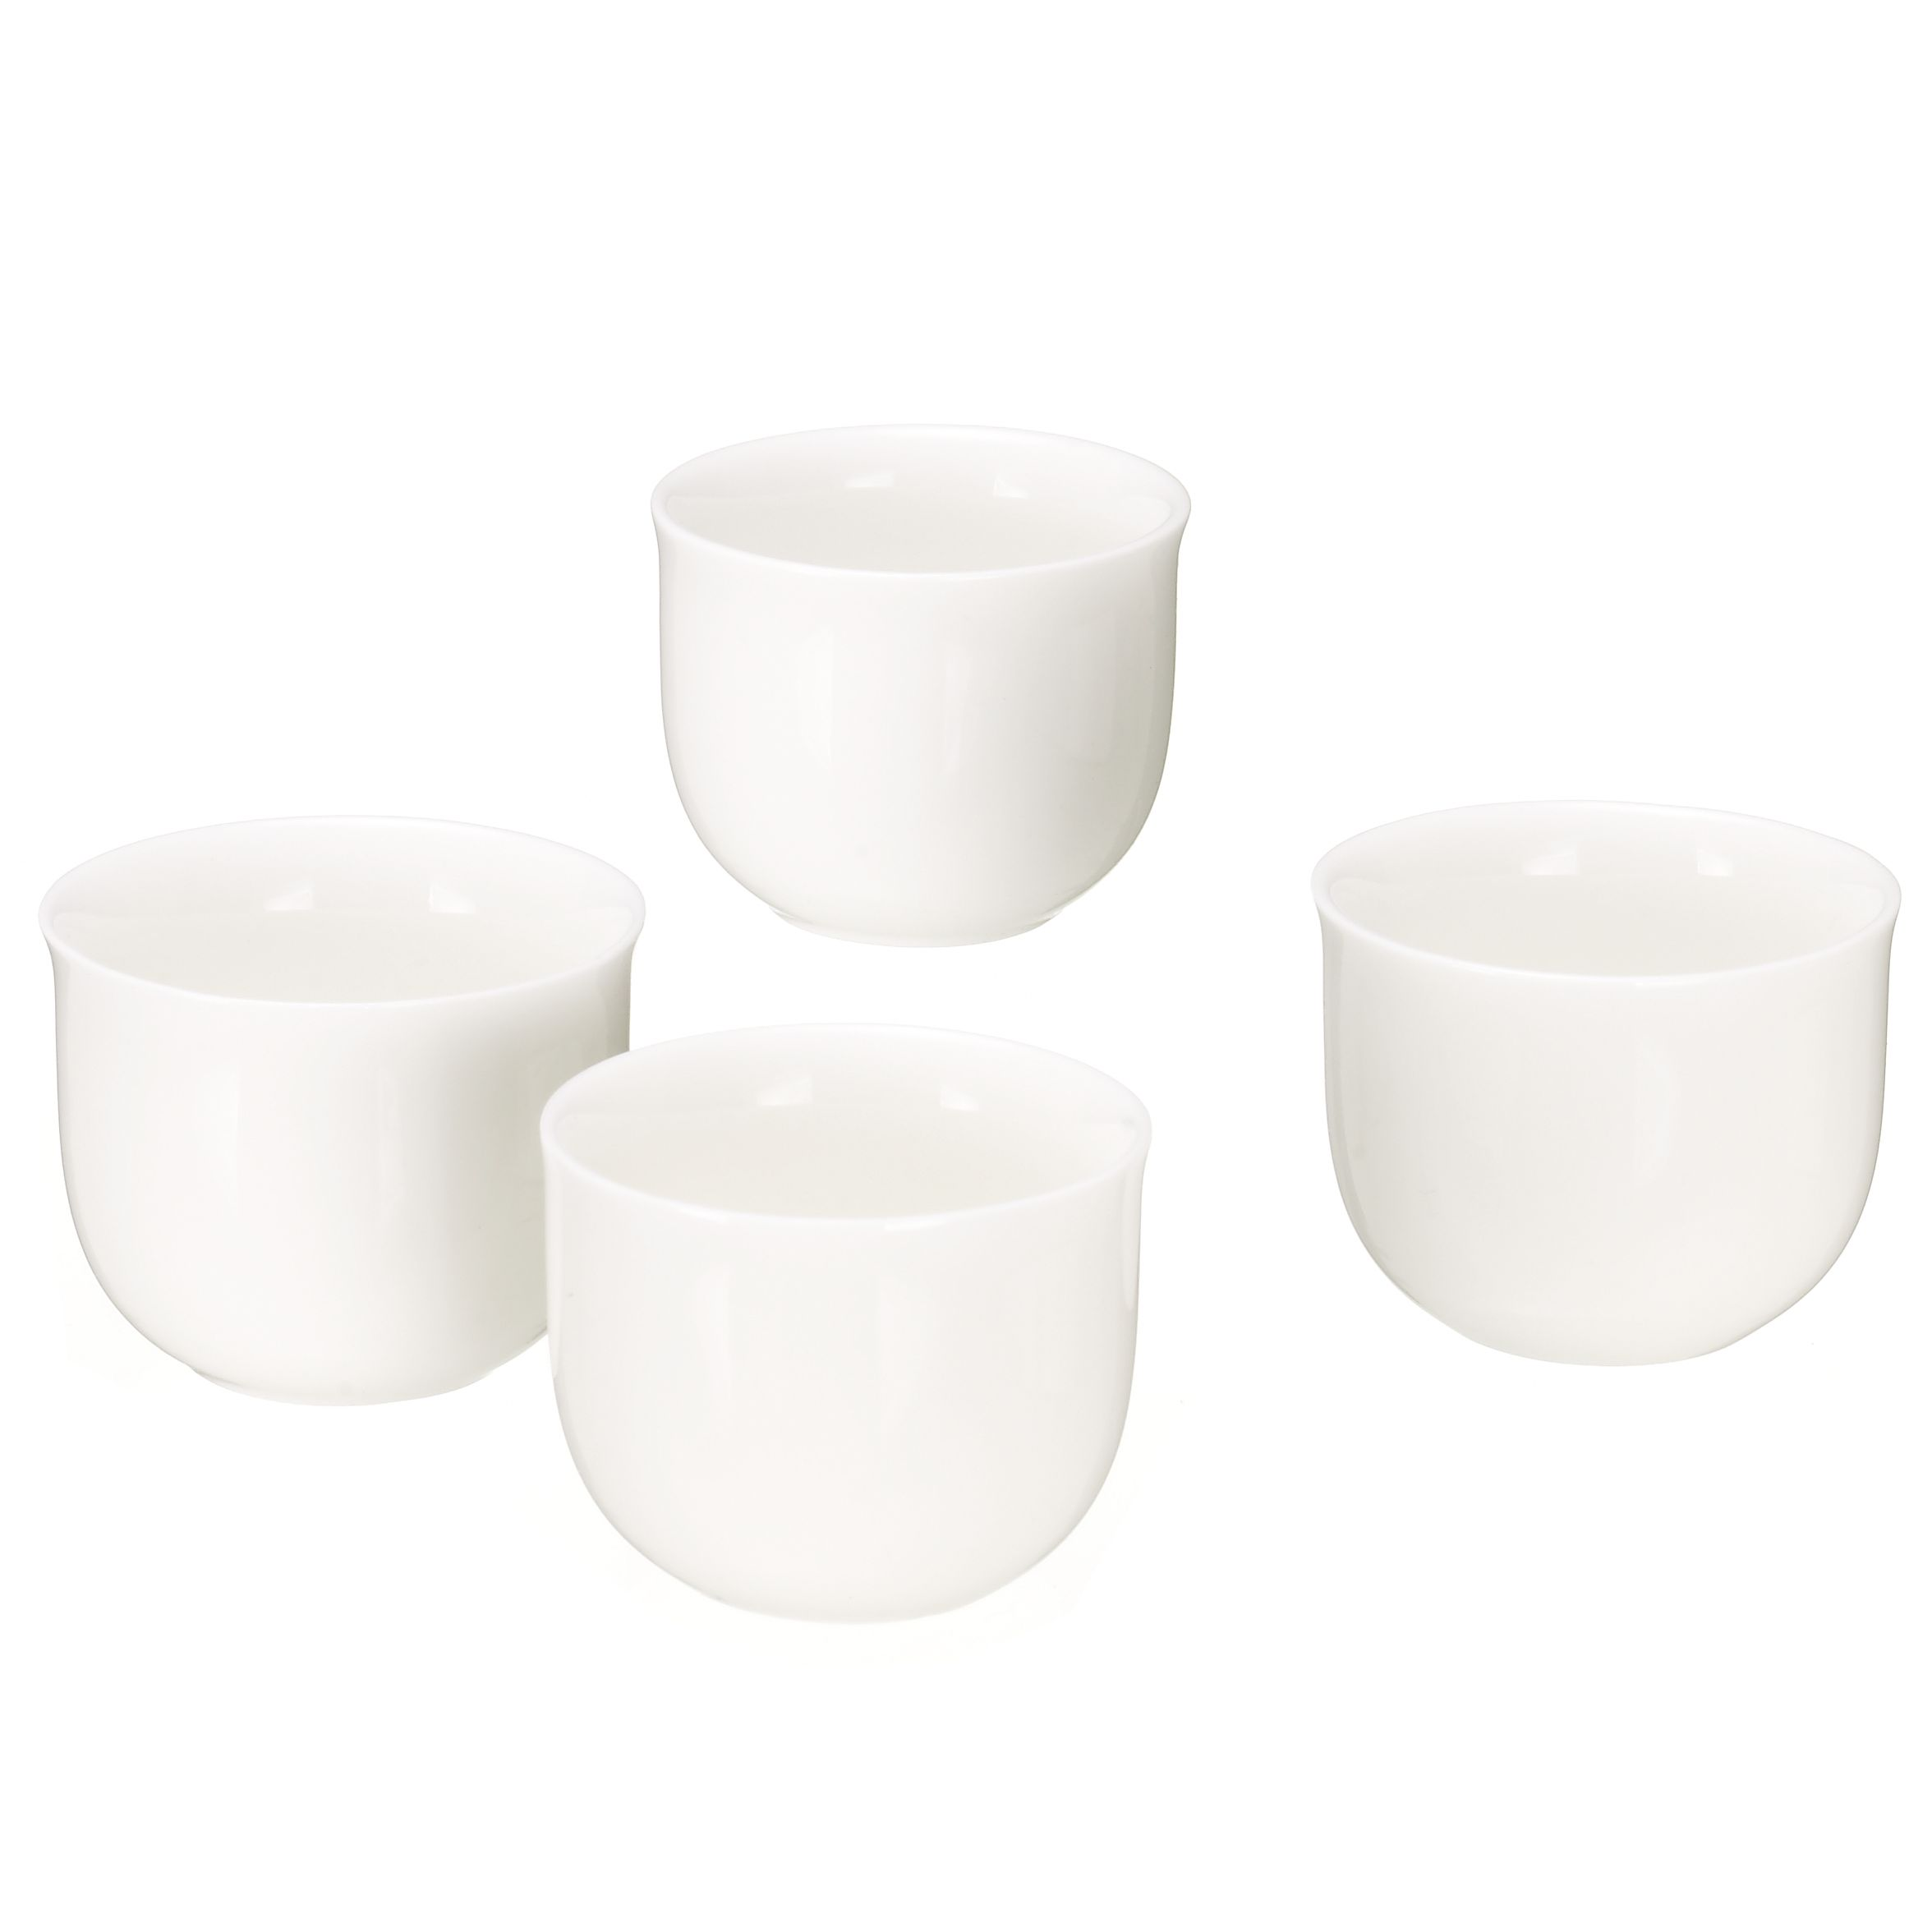 Queensberry Hunt for John Lewis White Egg Cups, Box of 4